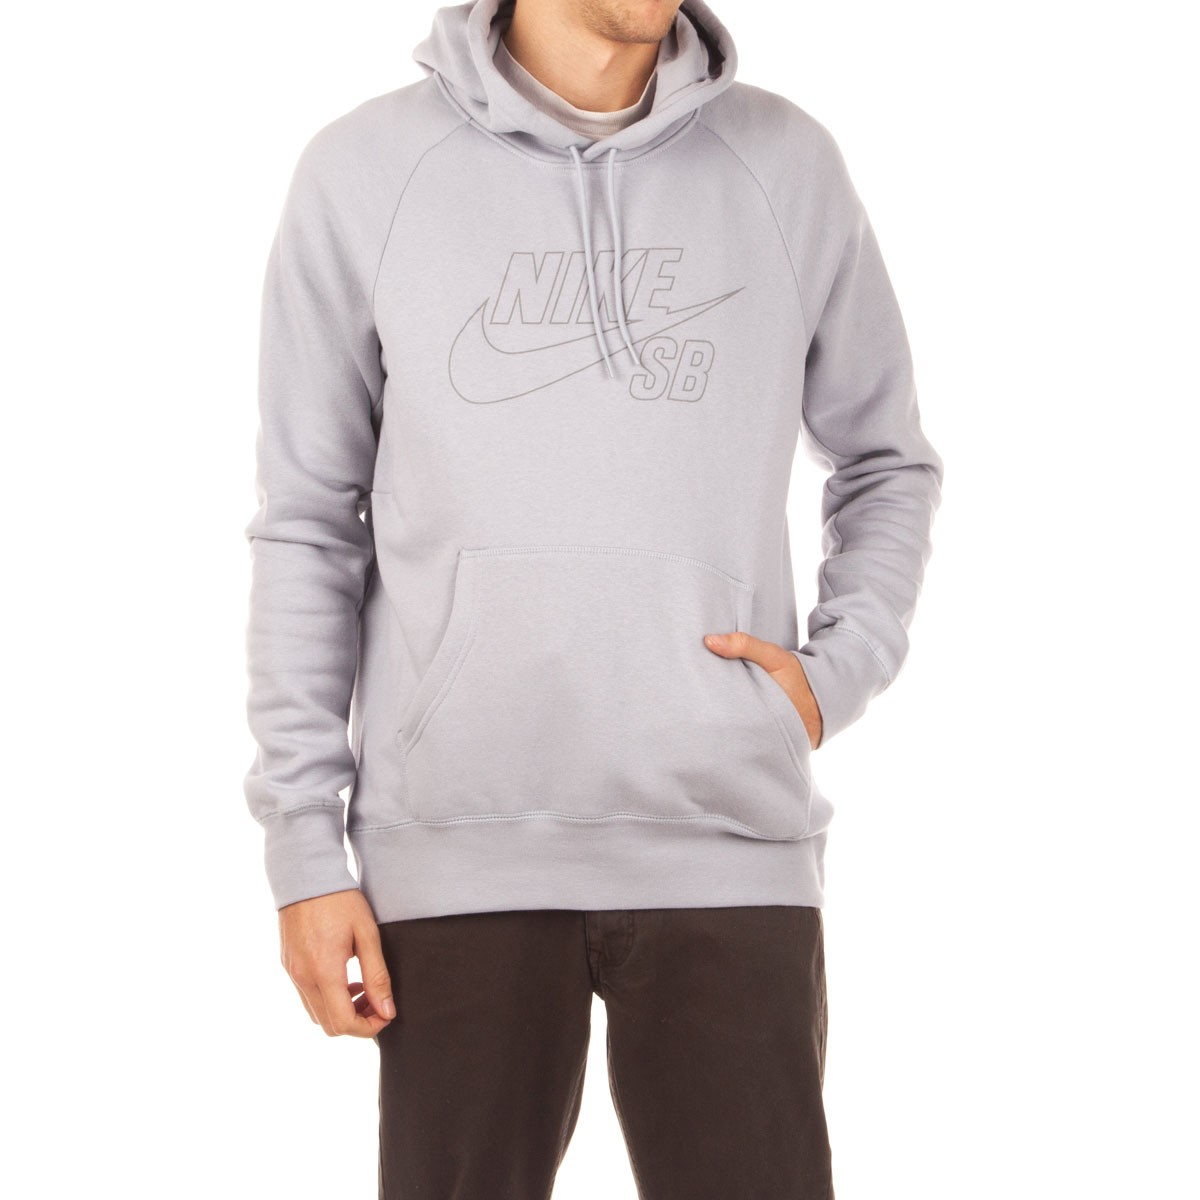 2cfd4e6ced4c nike-sb-icon-reflective-pullover-hoodie-wolf-grey -reflective-silver-1.1506736852.jpg